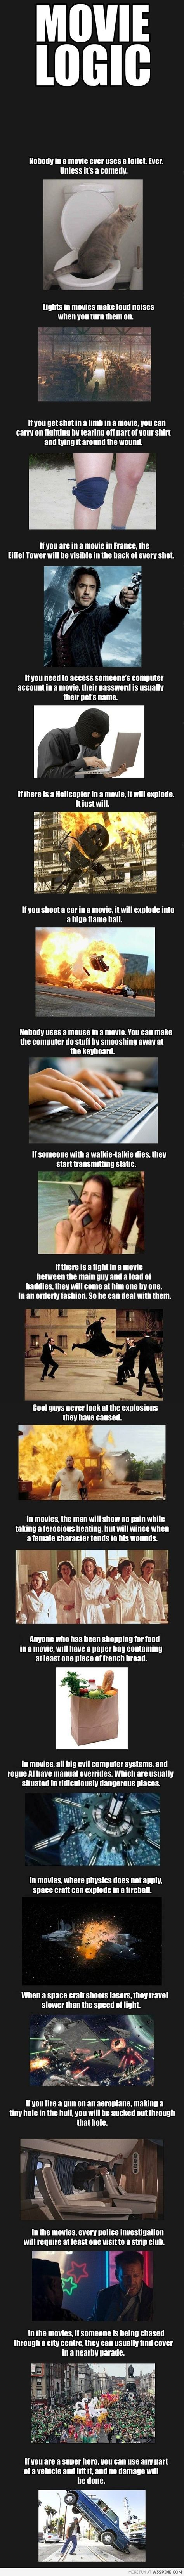 Movie Logic. THIS SAYS IT ALL!! lol